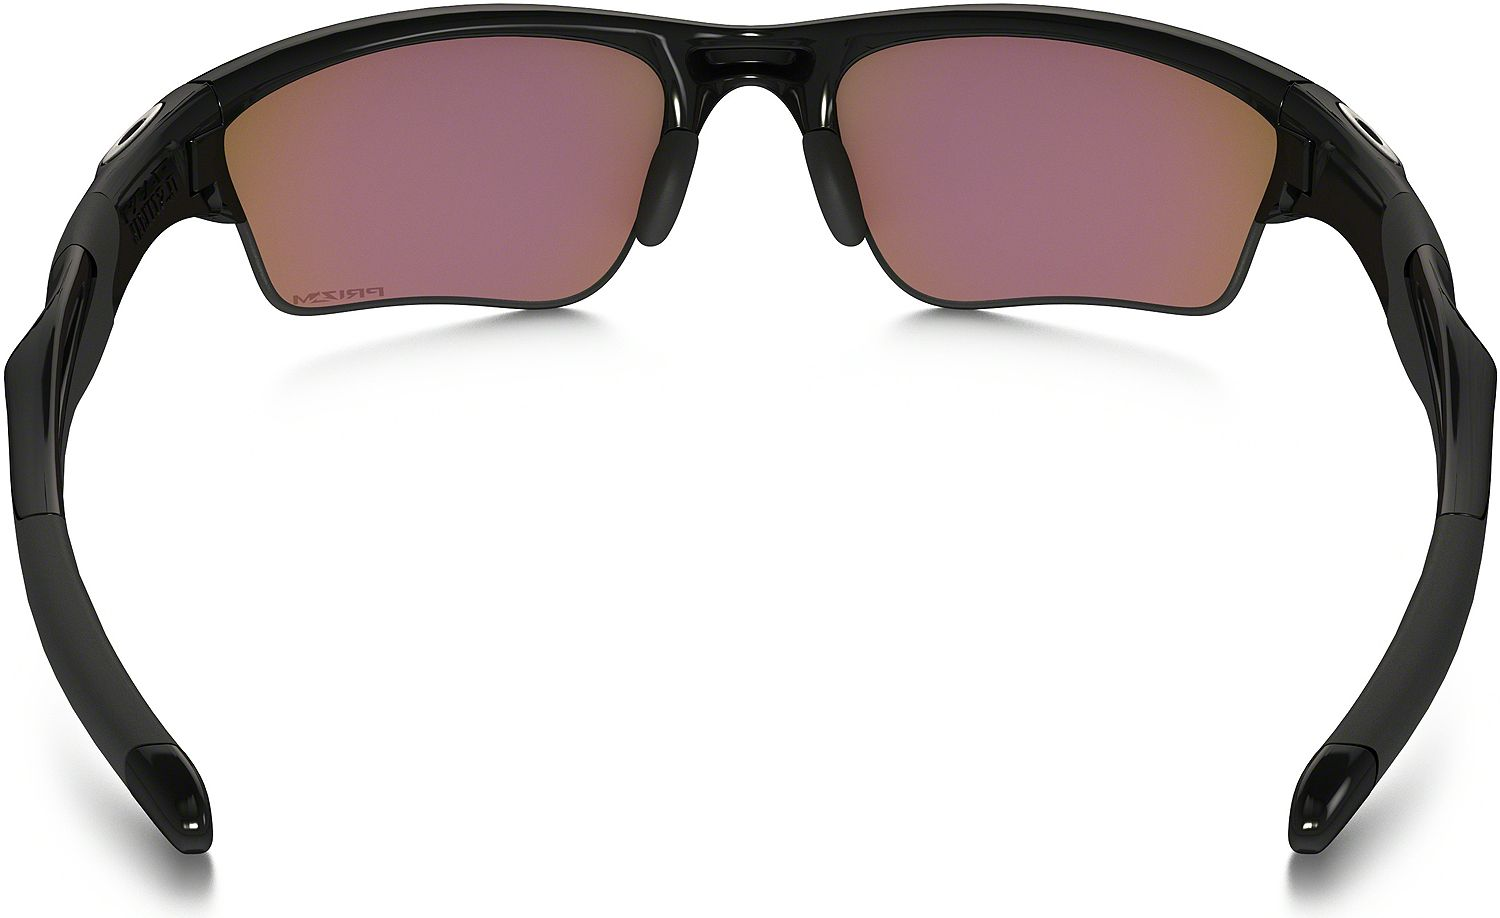 698d78a336 Oakley Half Jacket XL 2.0 Prizm Golf Polished Black Mens Sunglasses -  OO9154-49. Oakley OO9154-49 - 1